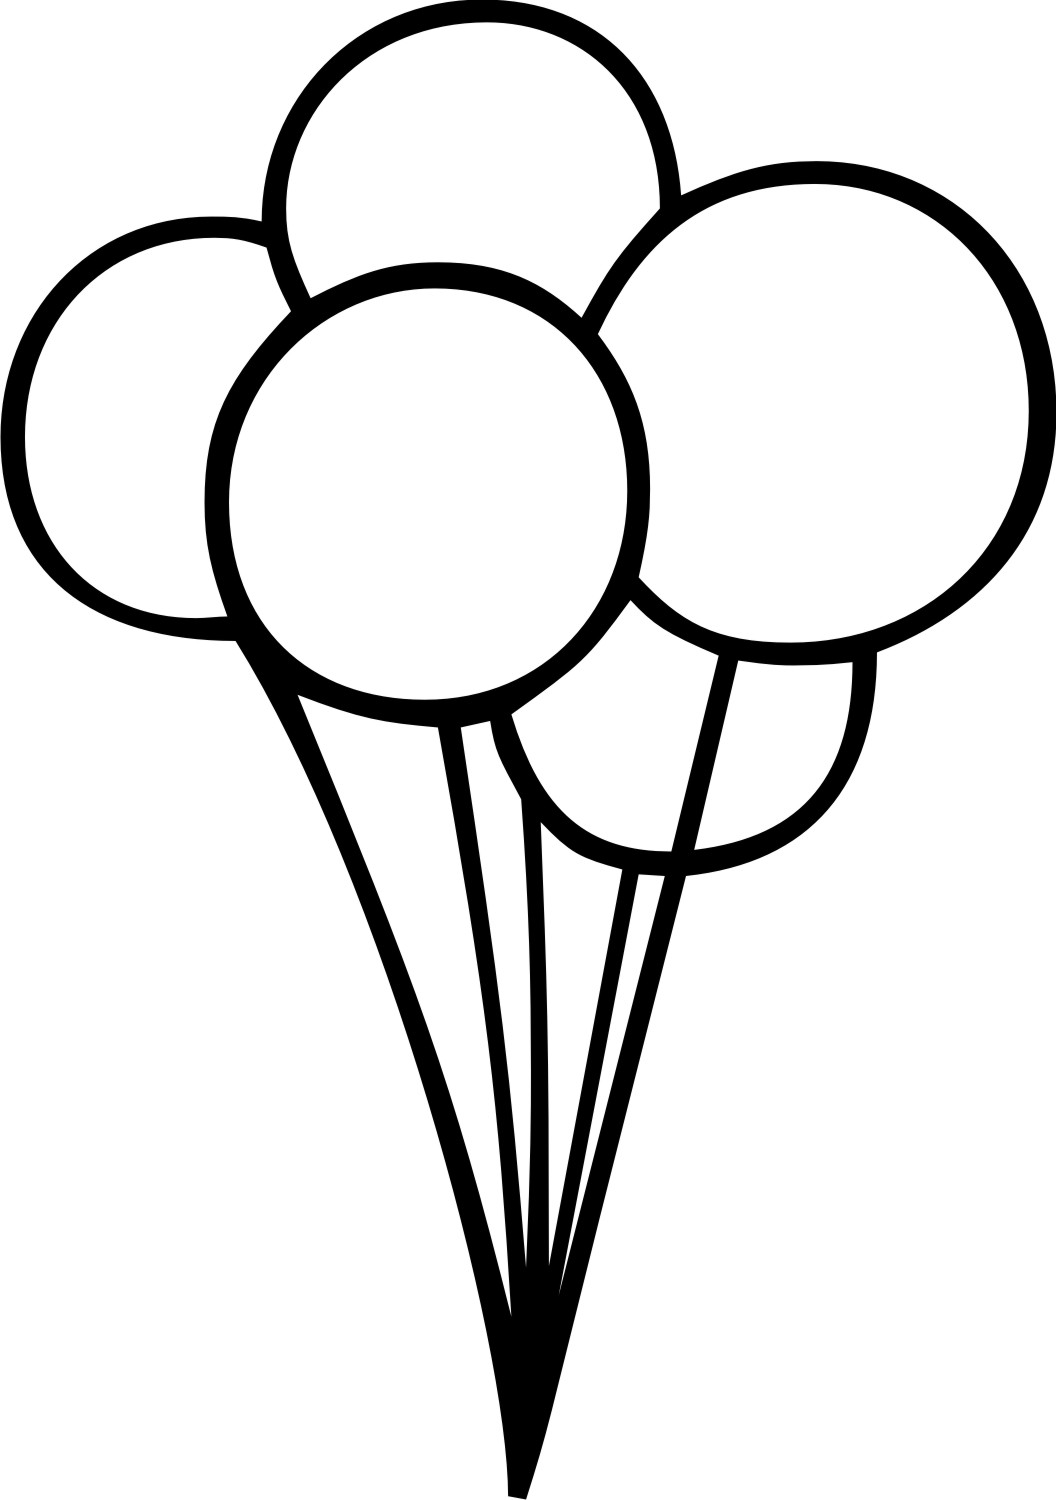 Balloons And Strings Clipart - ClipArt Best - ClipArt Best